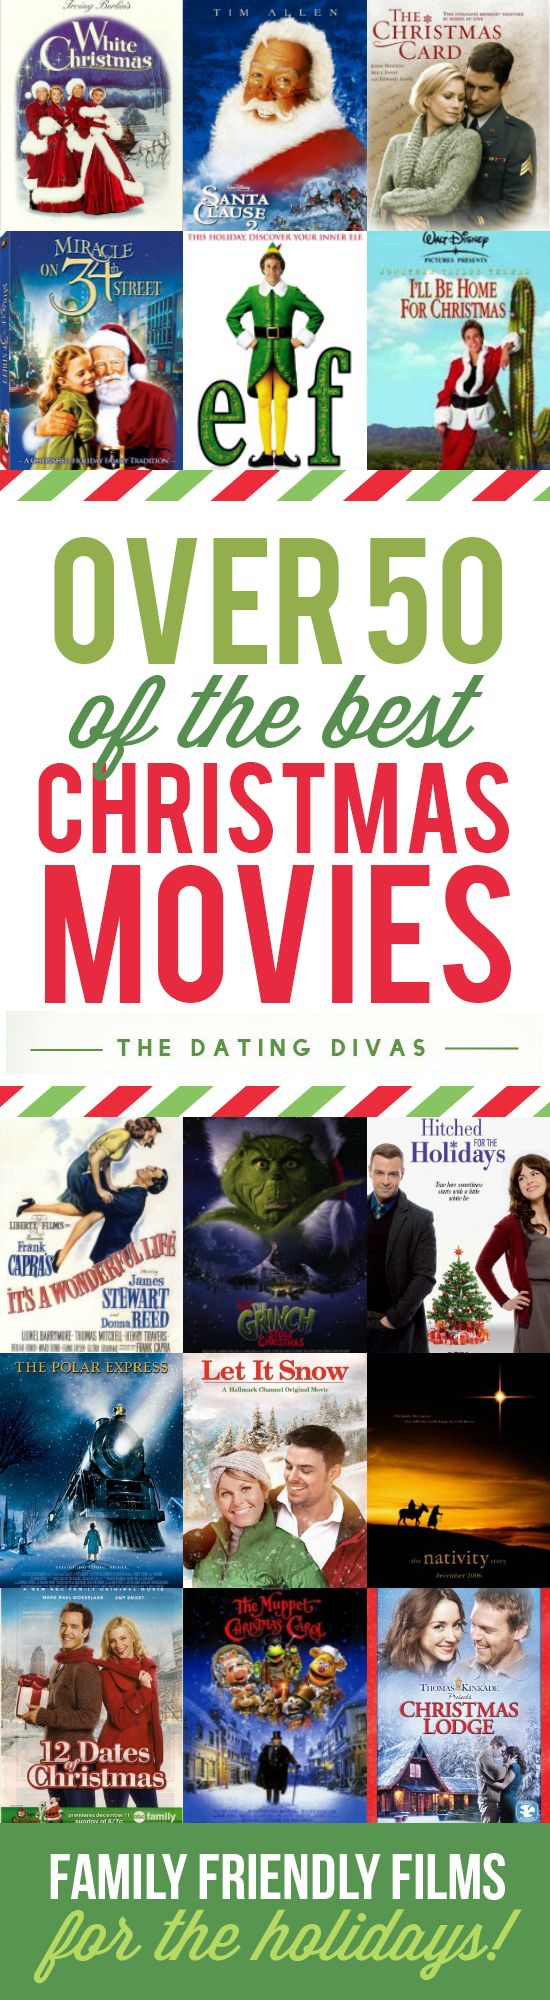 50 of the best Christmas movies all in one place! These are family-friendly films that are perfect for the holiday season